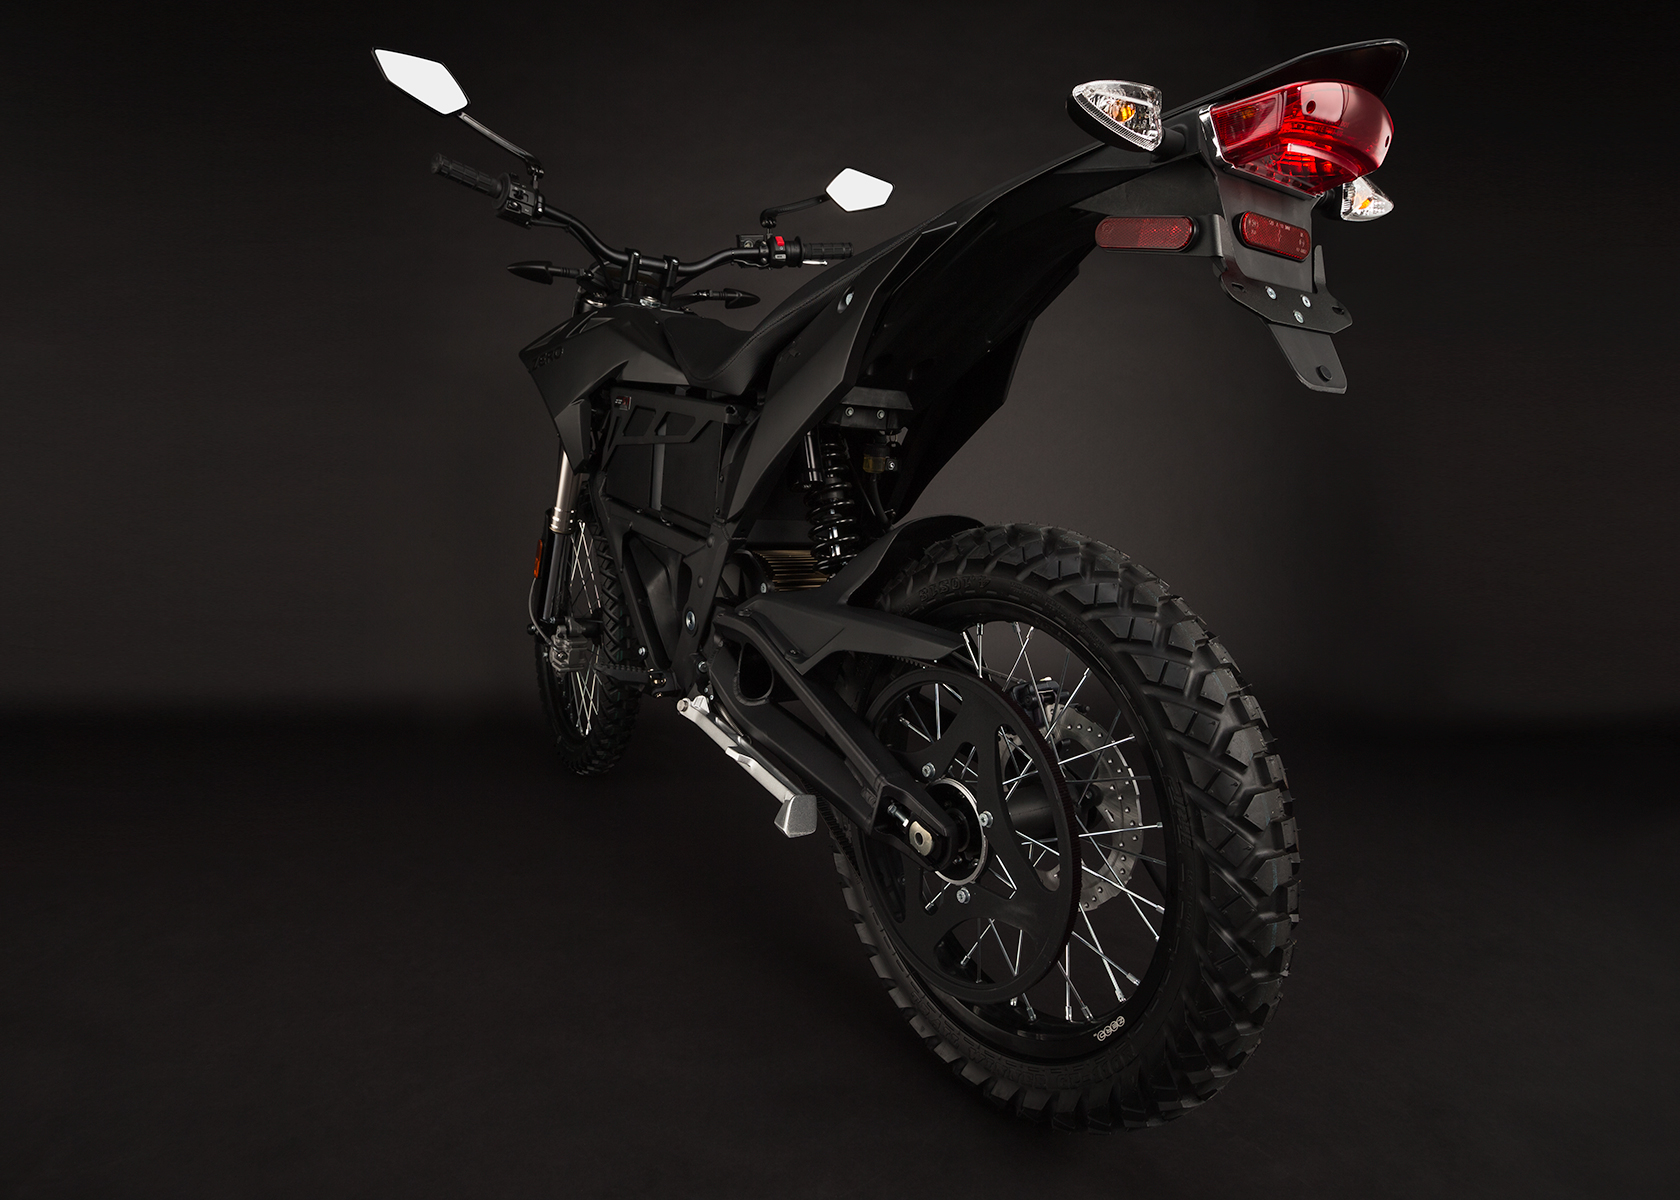 2014 Zero FX Electric Motorcycle: Belt Drive